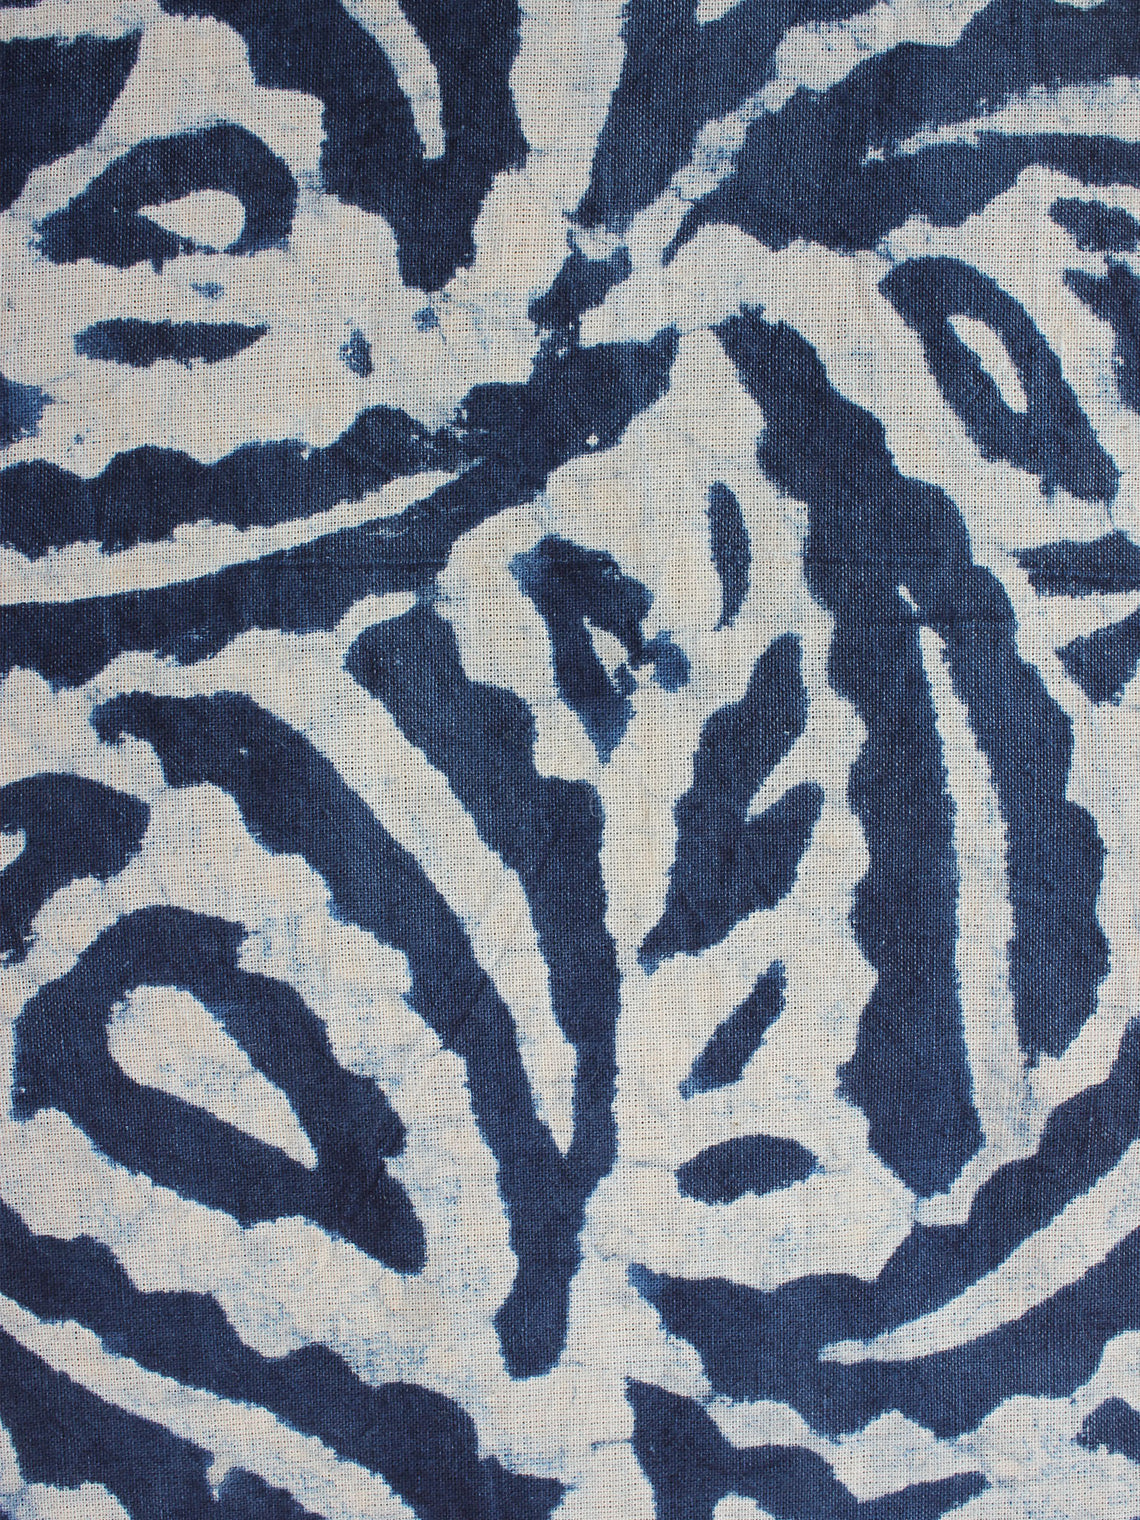 Indigo and White Color Natural Dyed Hand Block Printed Cotton Fabric Per Meter - F0916204